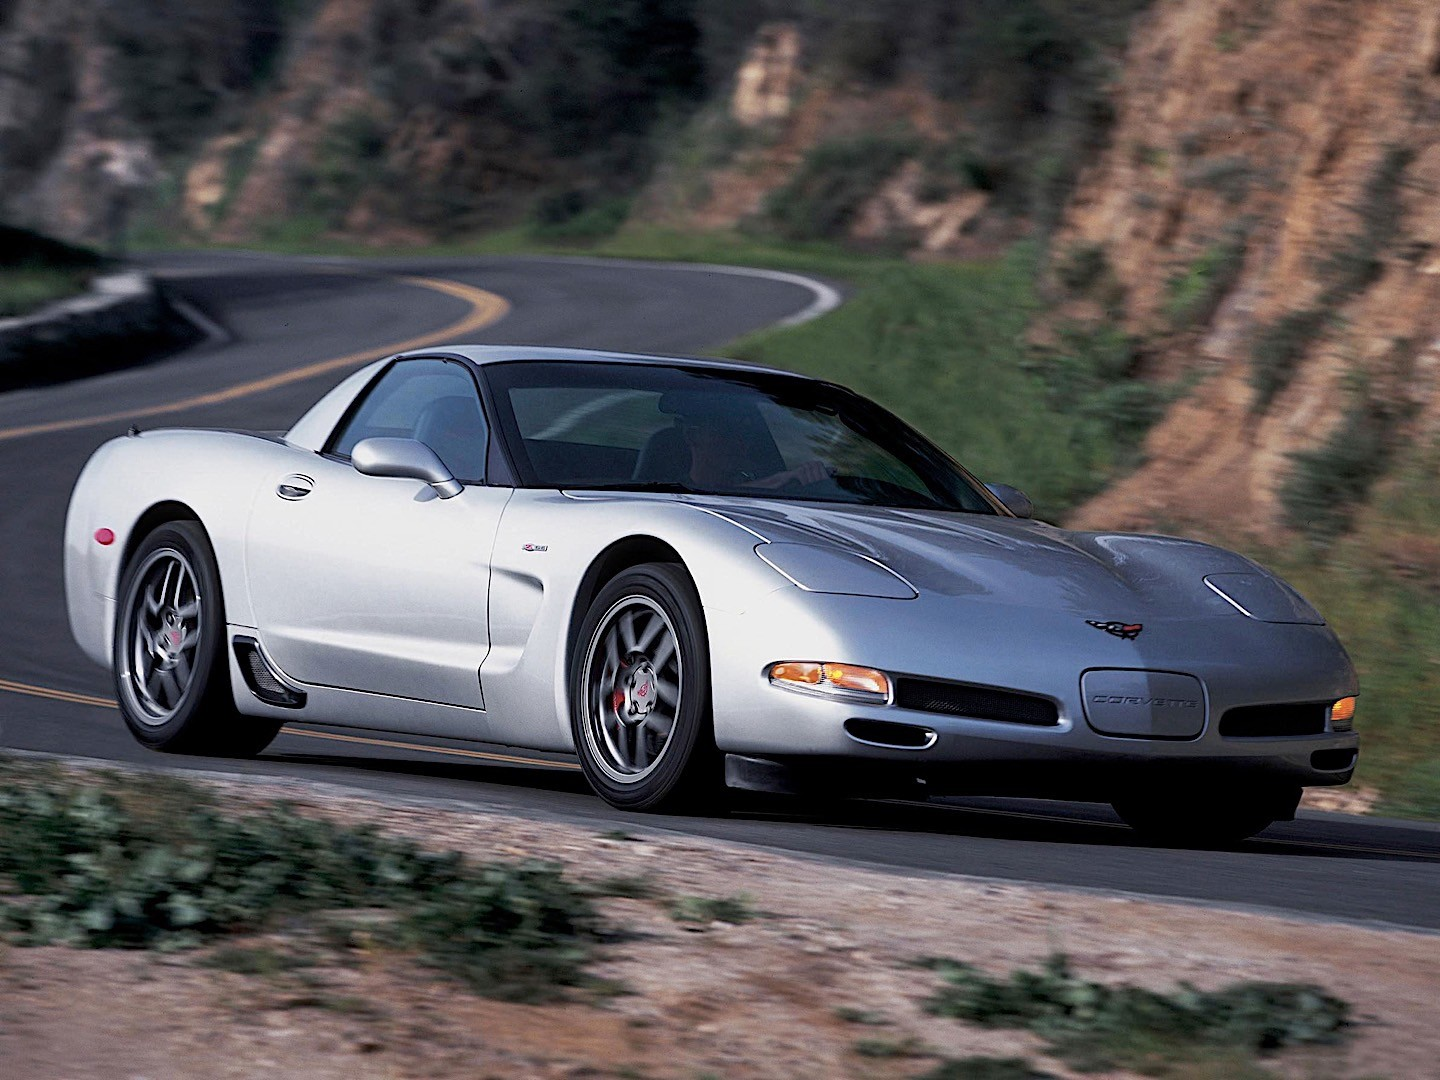 Chevrolet Corvette C5 Z06 Specs Amp Photos 2001 2002